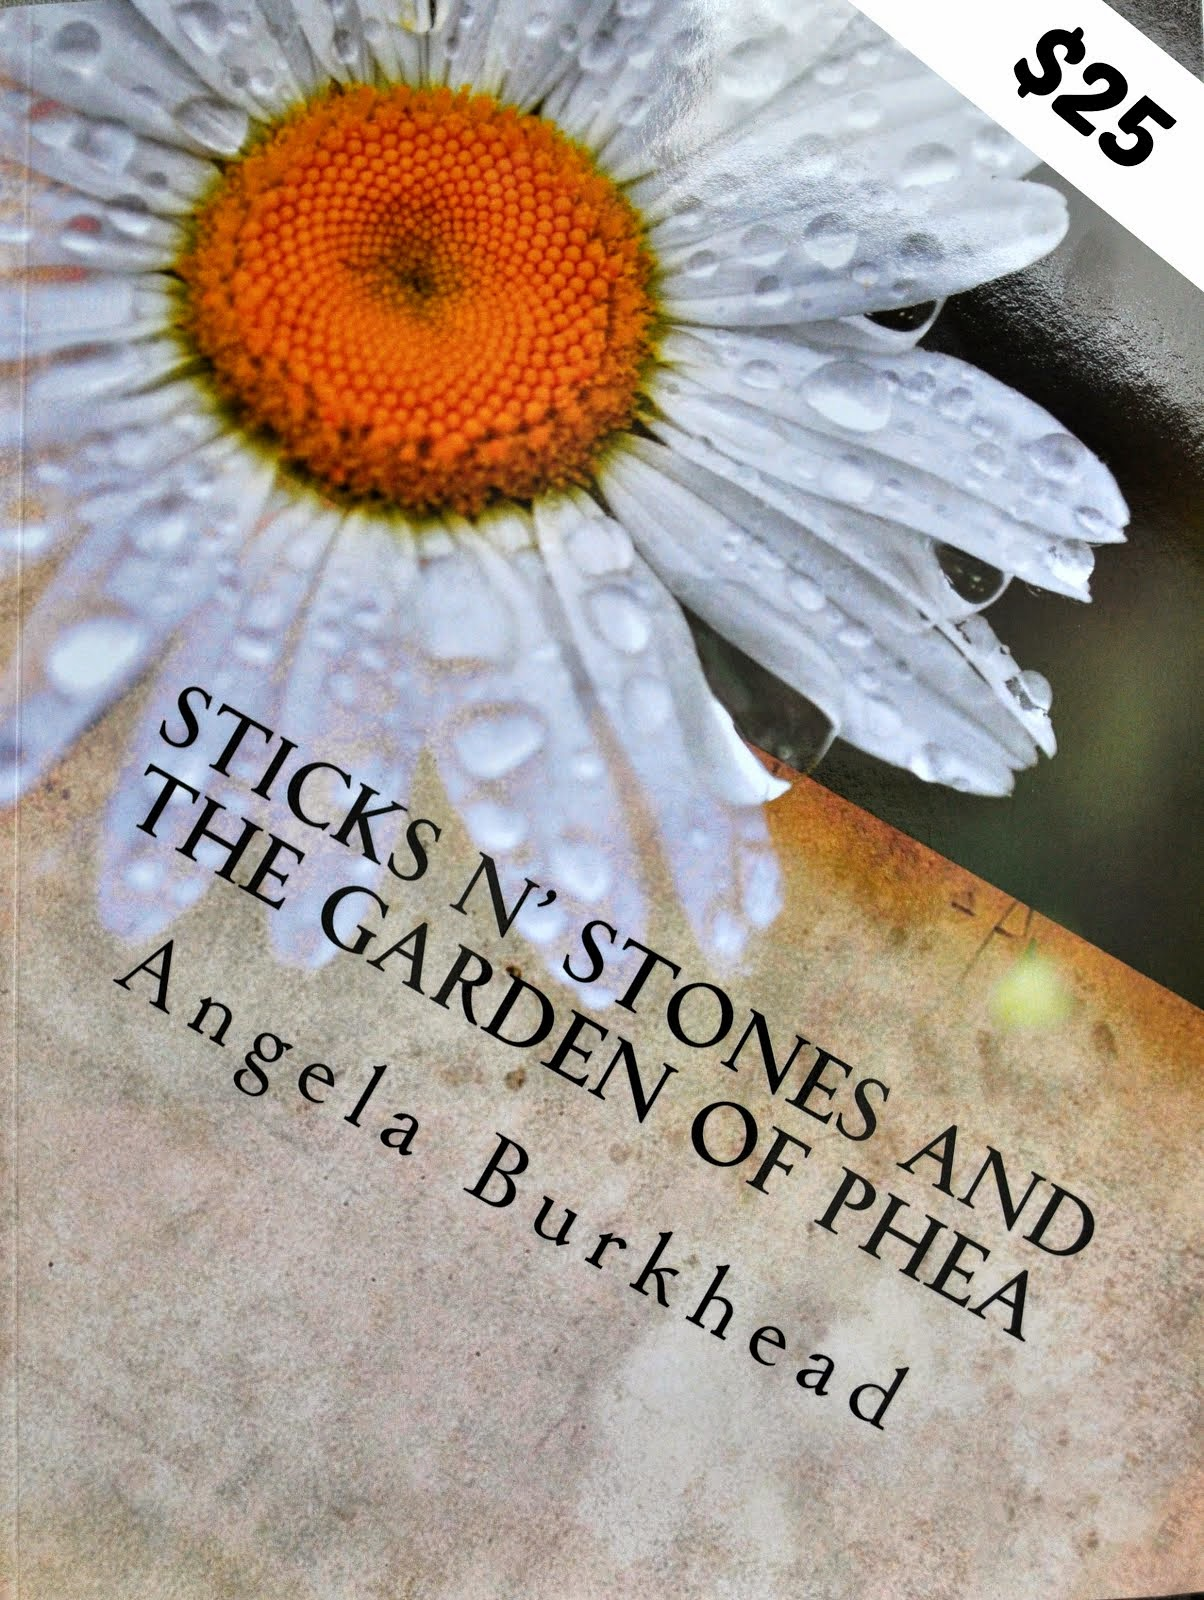 Books direct sticks n 39 stones and the garden of phea by for Sticks and stones landscaping